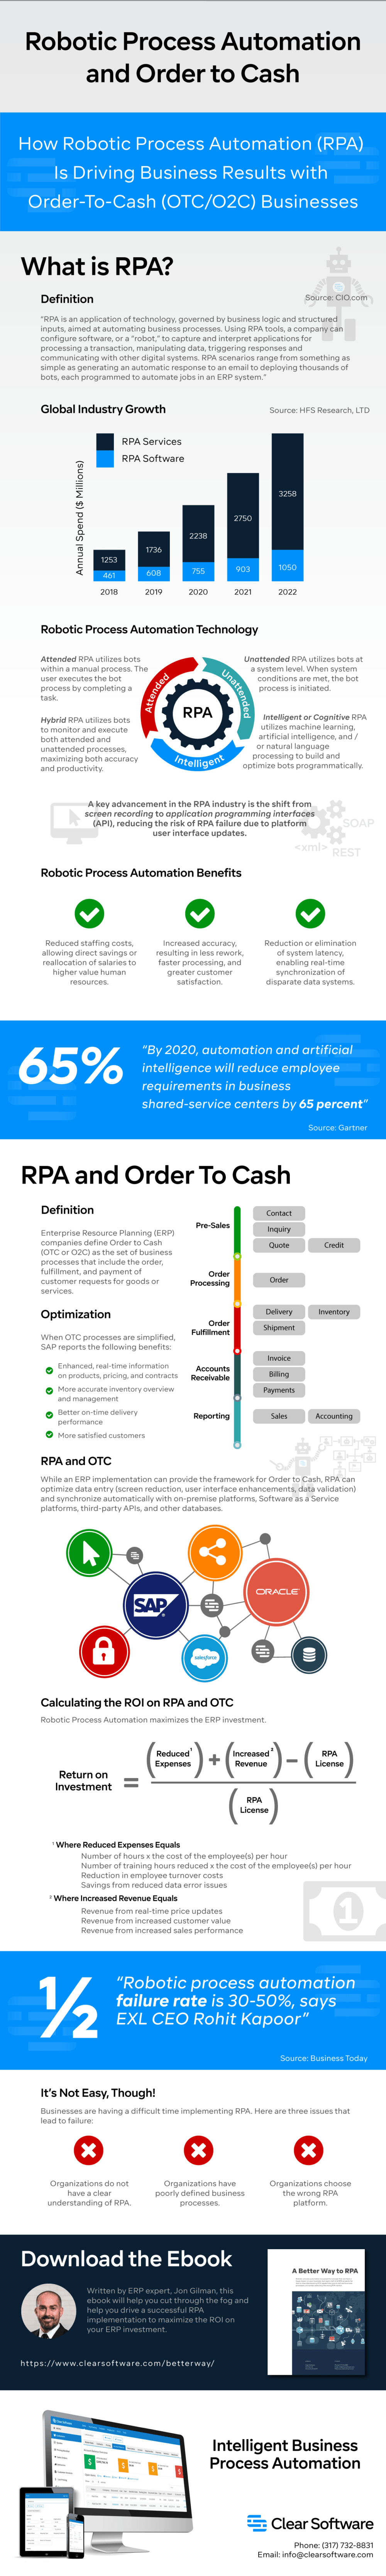 How RPA Impacts Order to Cash